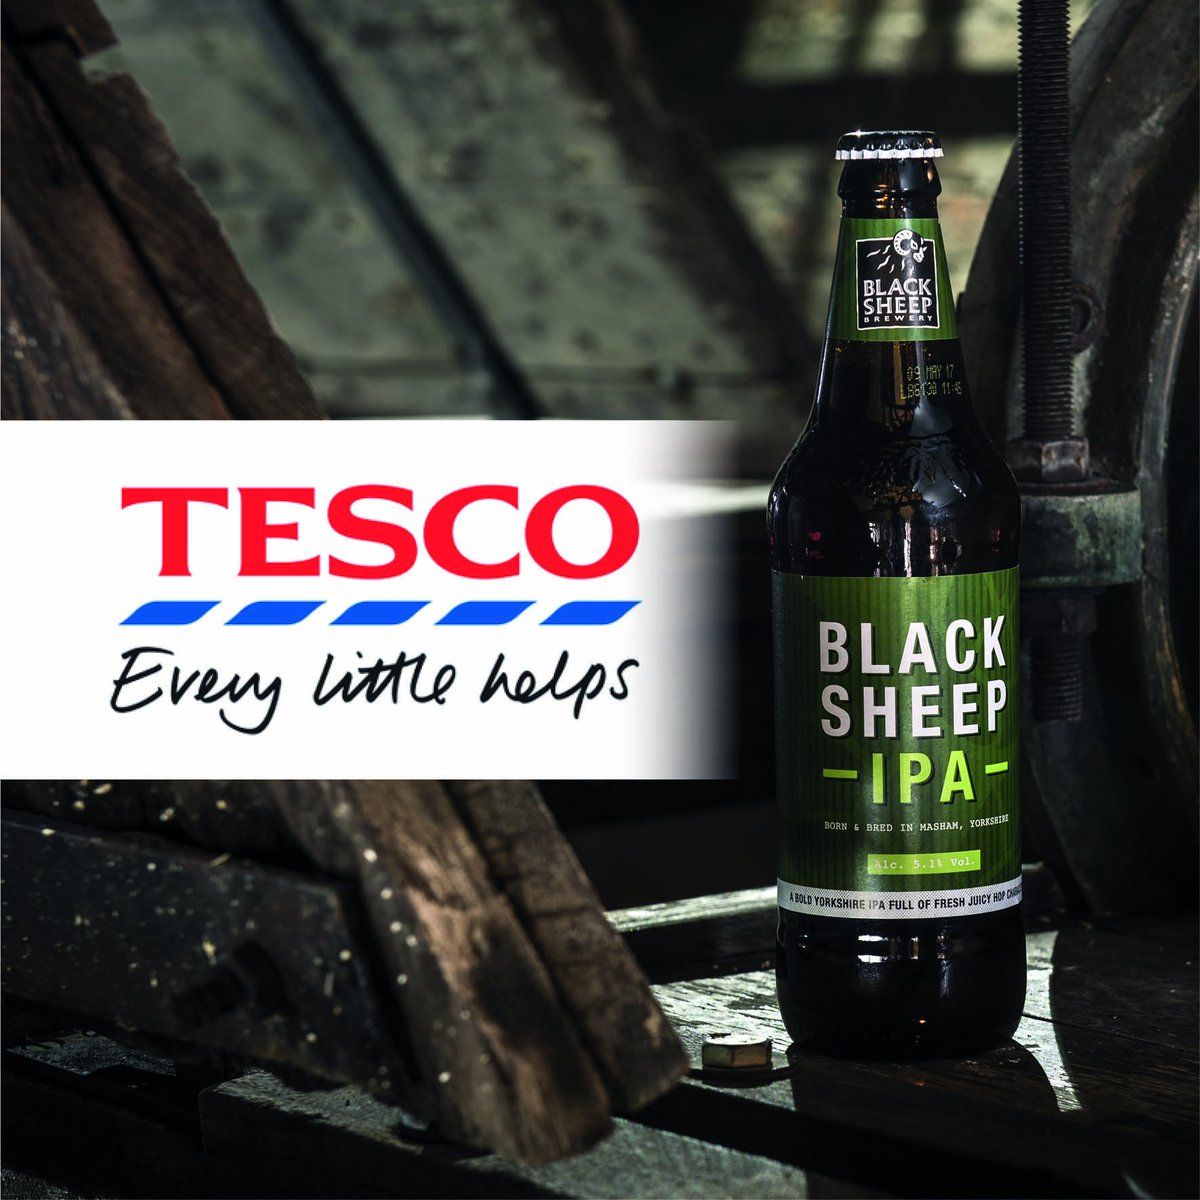 #RetweetToWin with #BlackSheepIPA and @Tesco! A lucky #winner will be chosen on Friday to #win a case of glasses https://t.co/nQHNrJUeiq